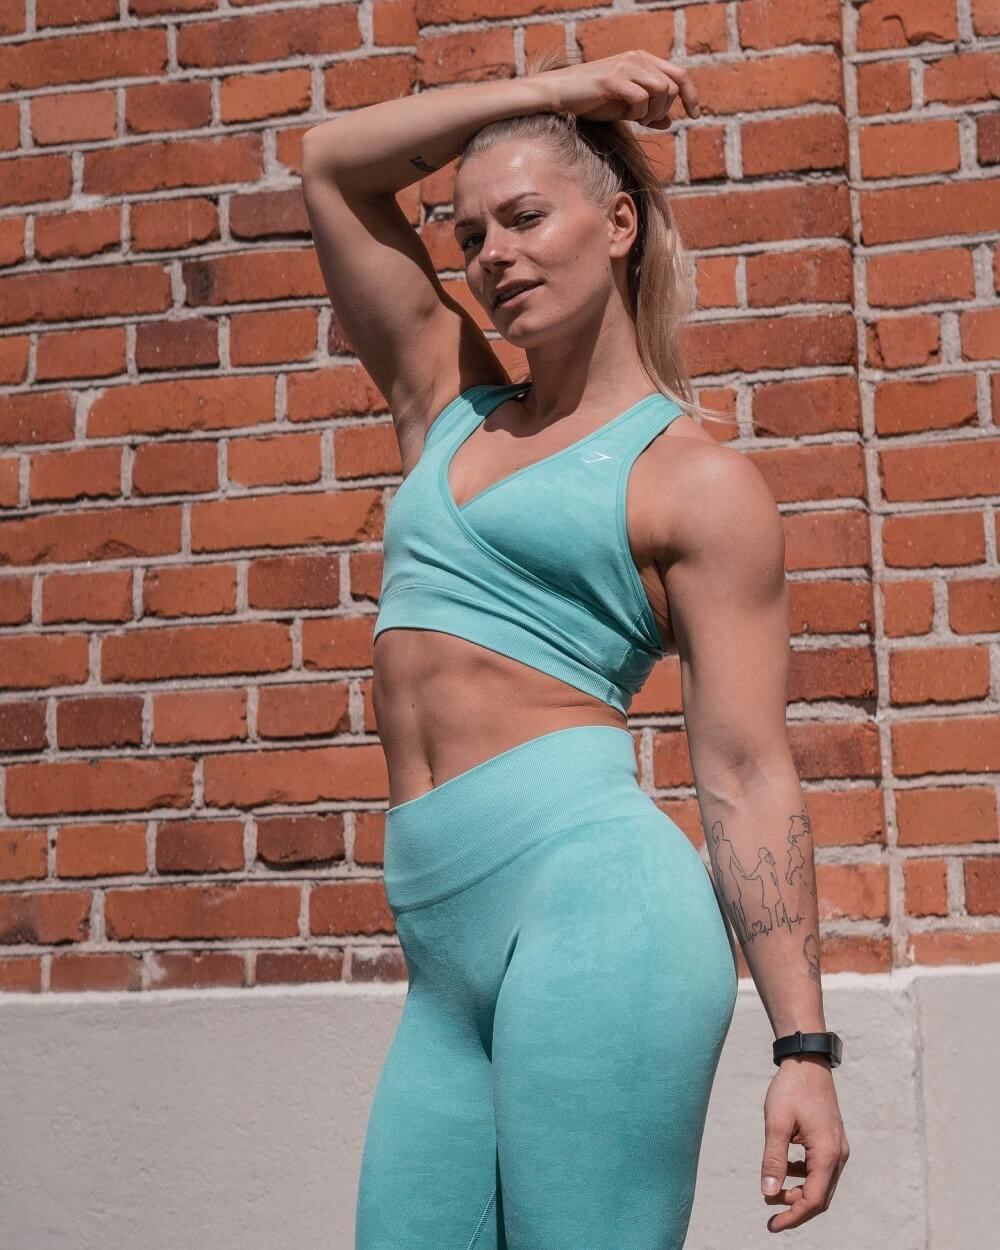 Malin Malle calisthenics athlete